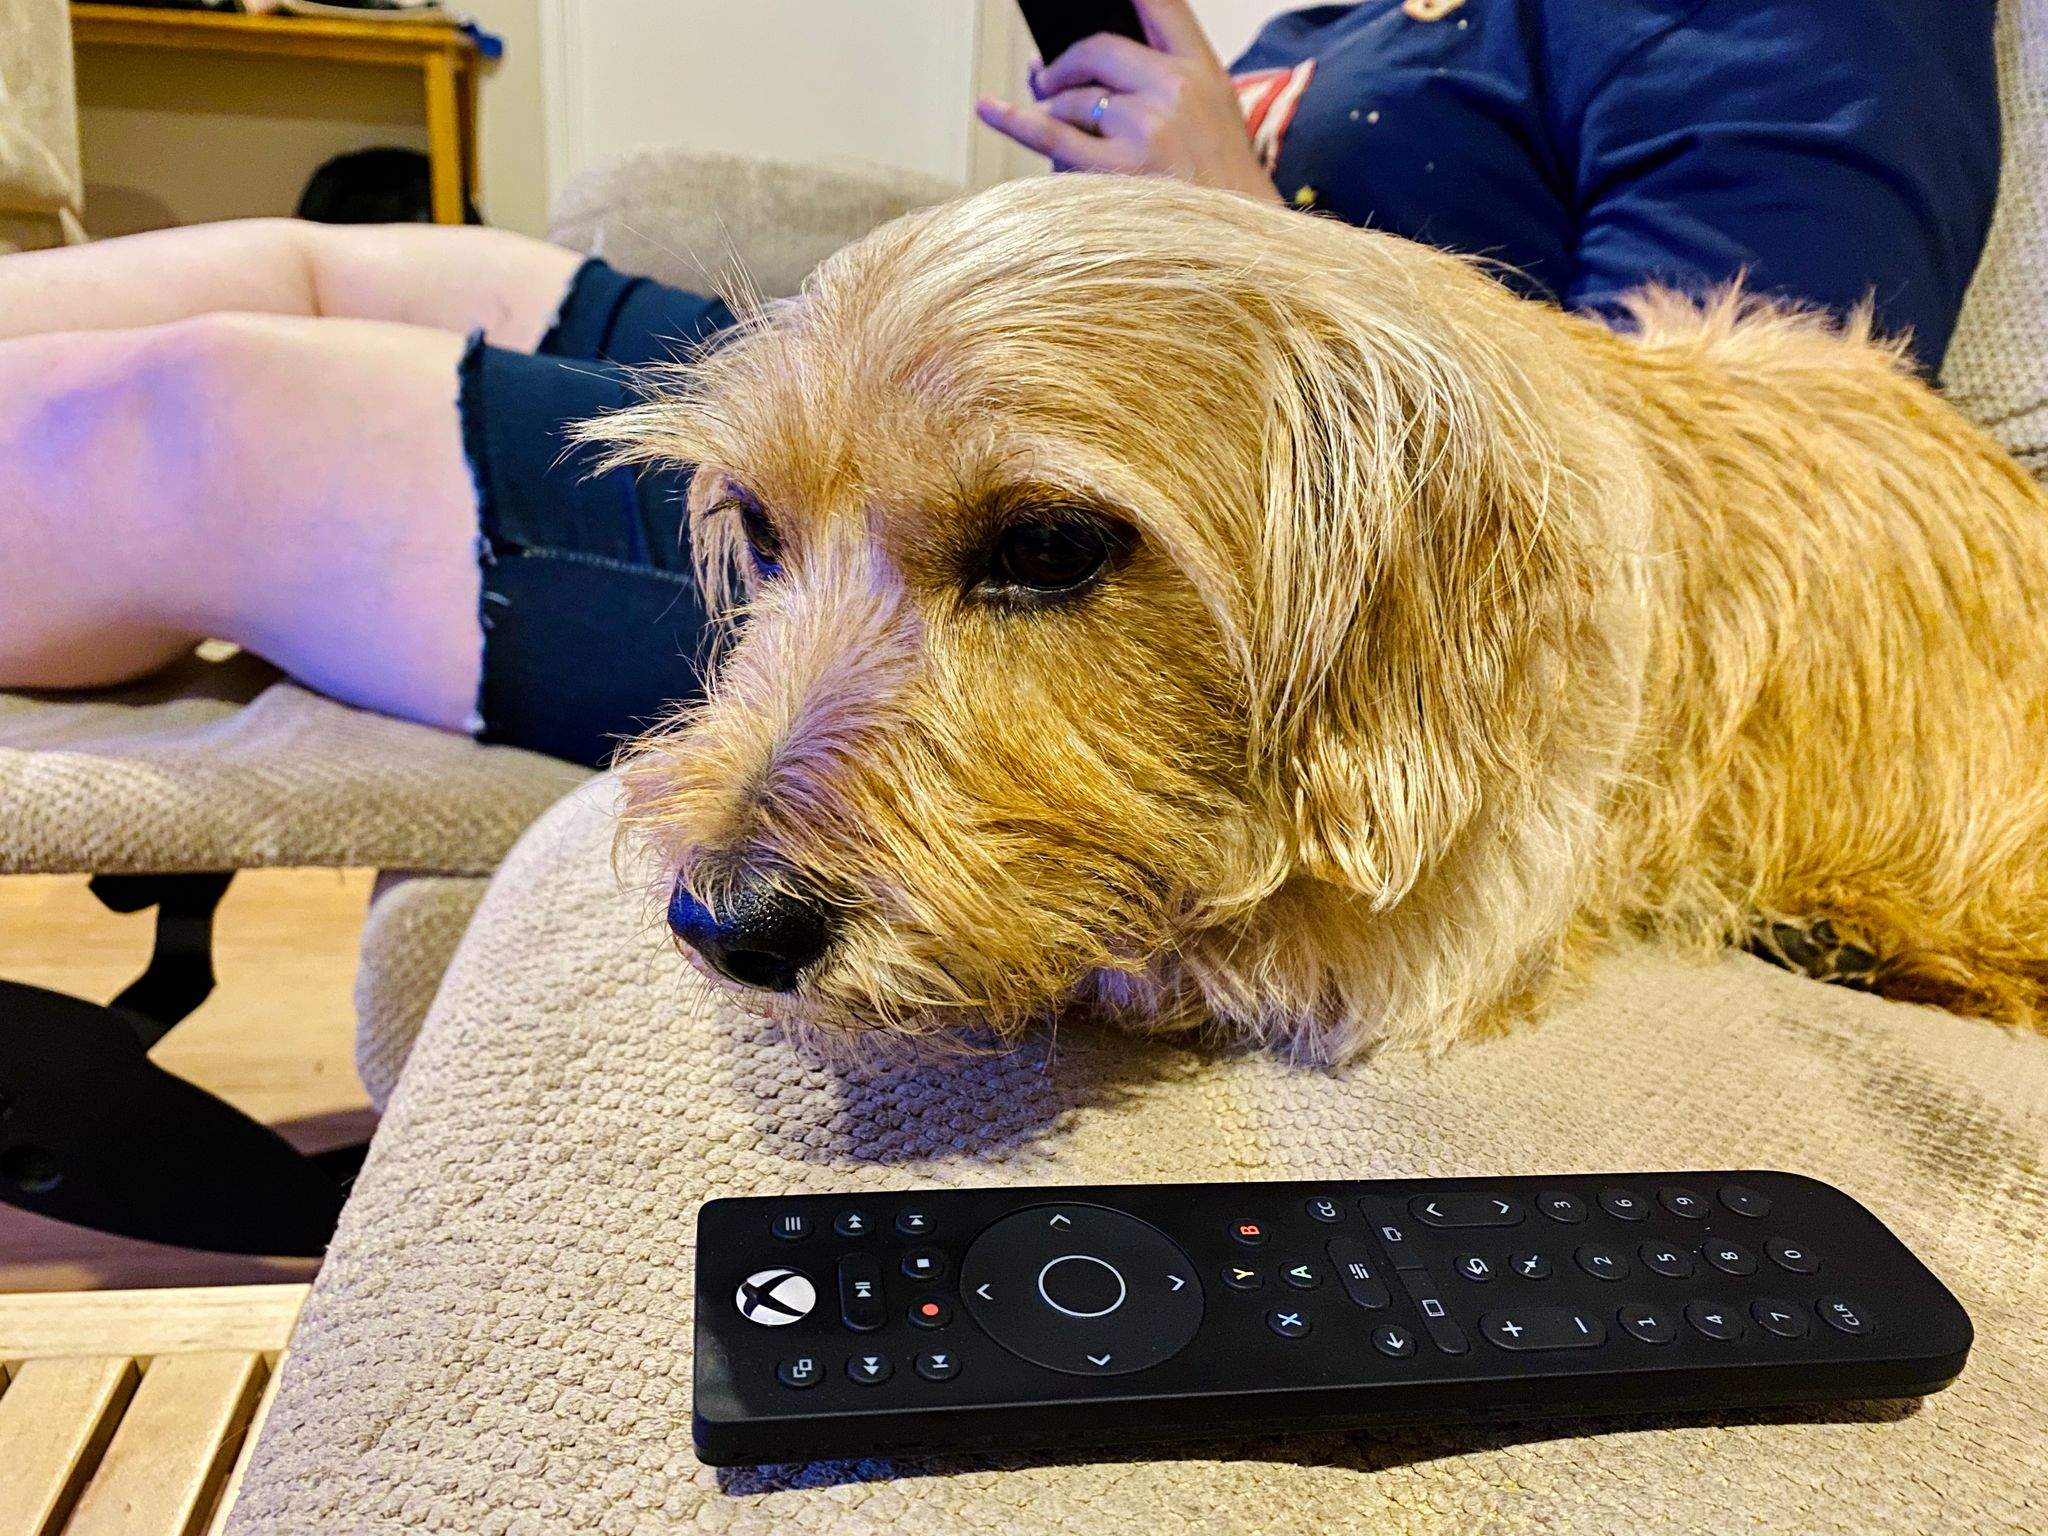 A photo of a small scruffy blonde dog lying next to an Xbox One media remote with his head down looking vaguely guilty.